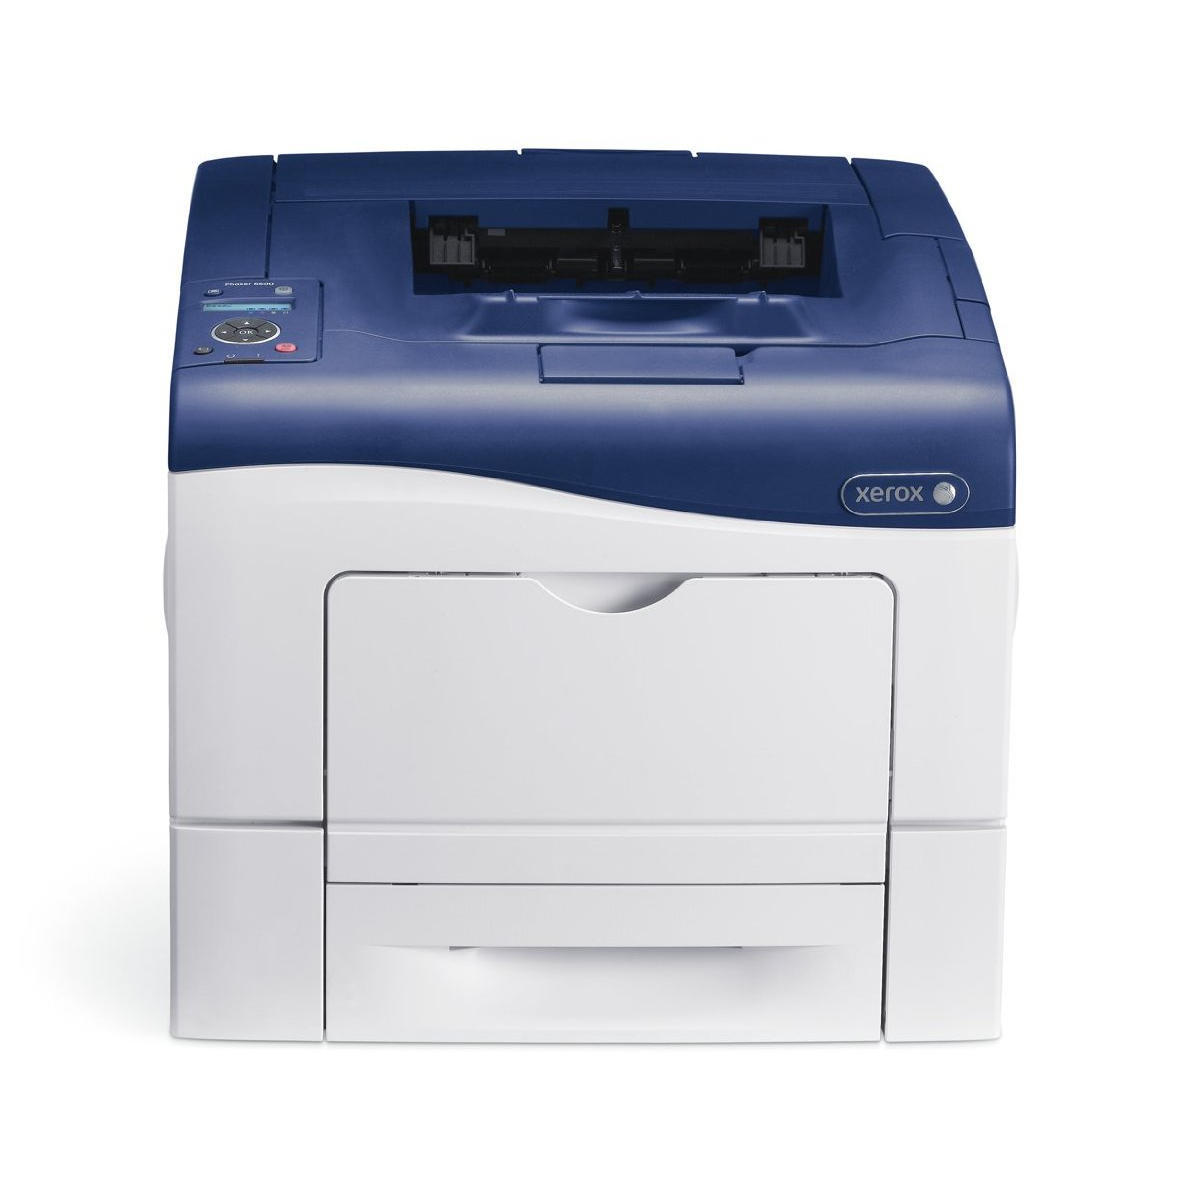 Xerox Phaser 6600/DN Single Function Colour Laser Printer (Phaser 6600)